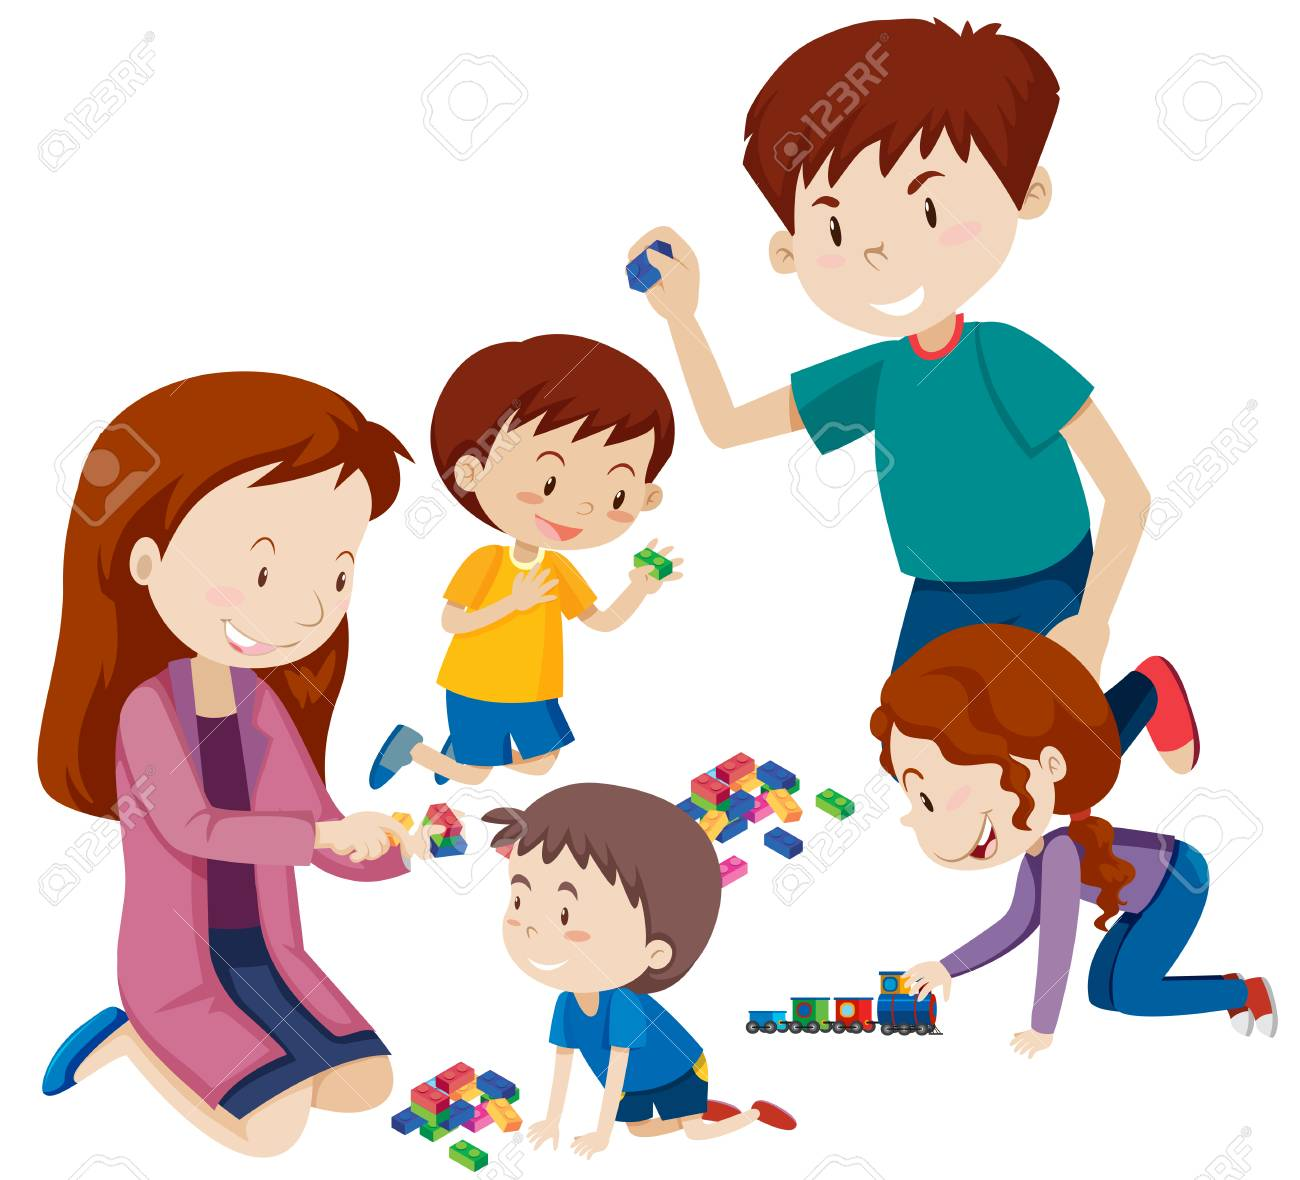 Parents Playing With Children Illustration Royalty Free Cliparts ...